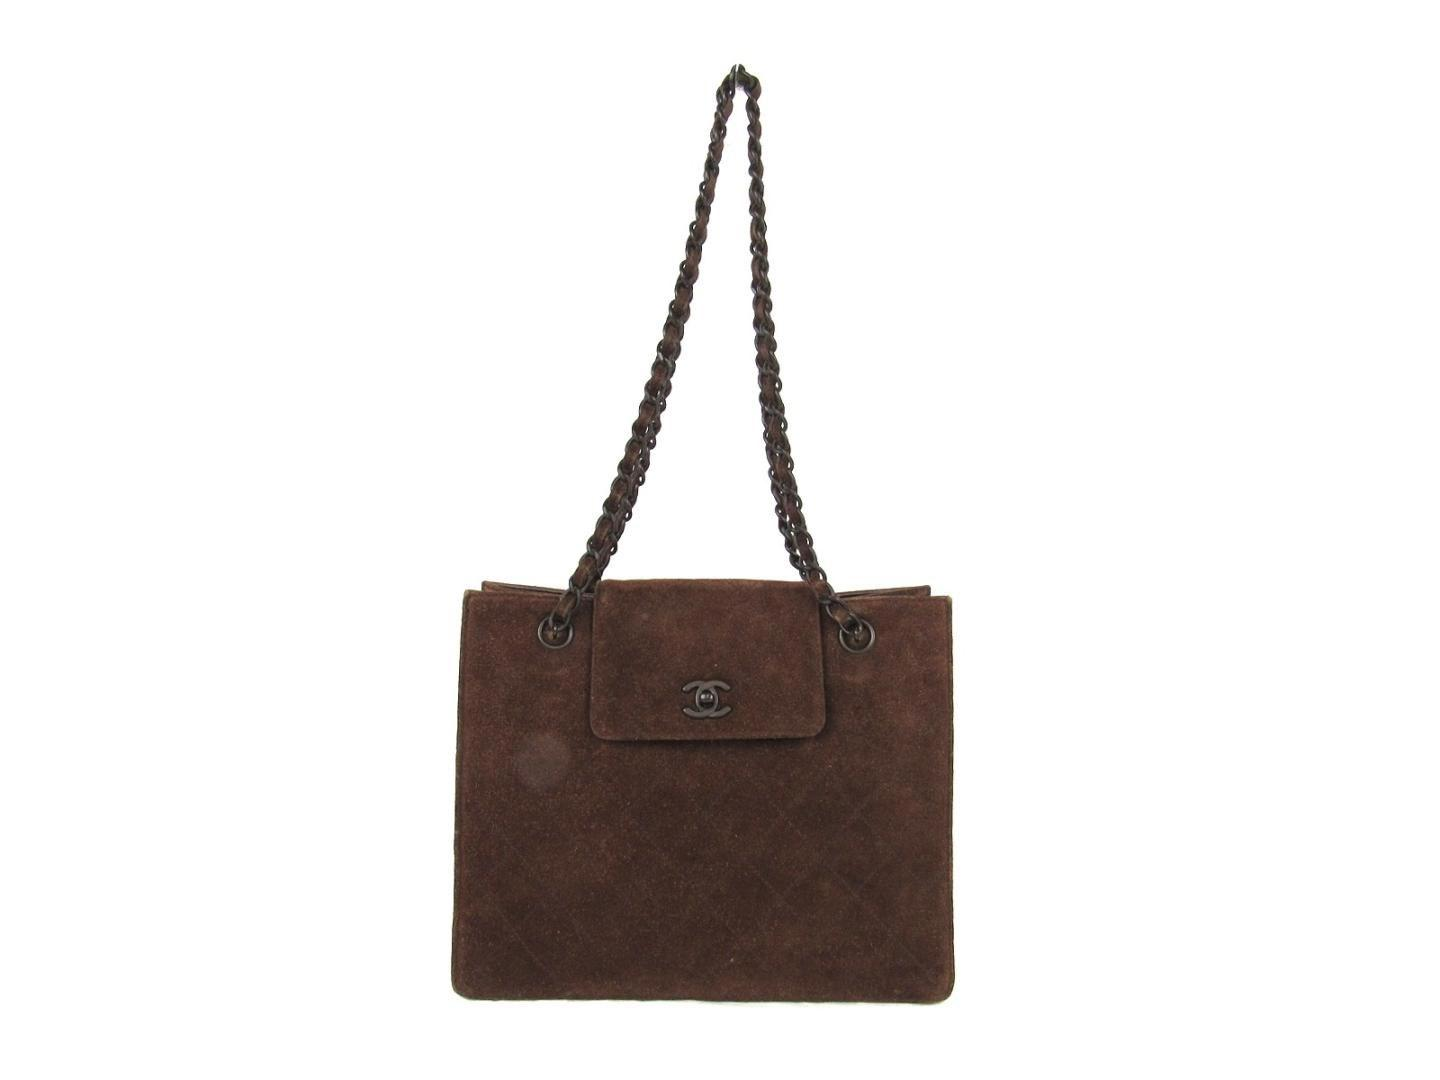 4b95f4116ac0 Lyst - Chanel Chain Shoulderbag Totebag Brown Suede in Brown